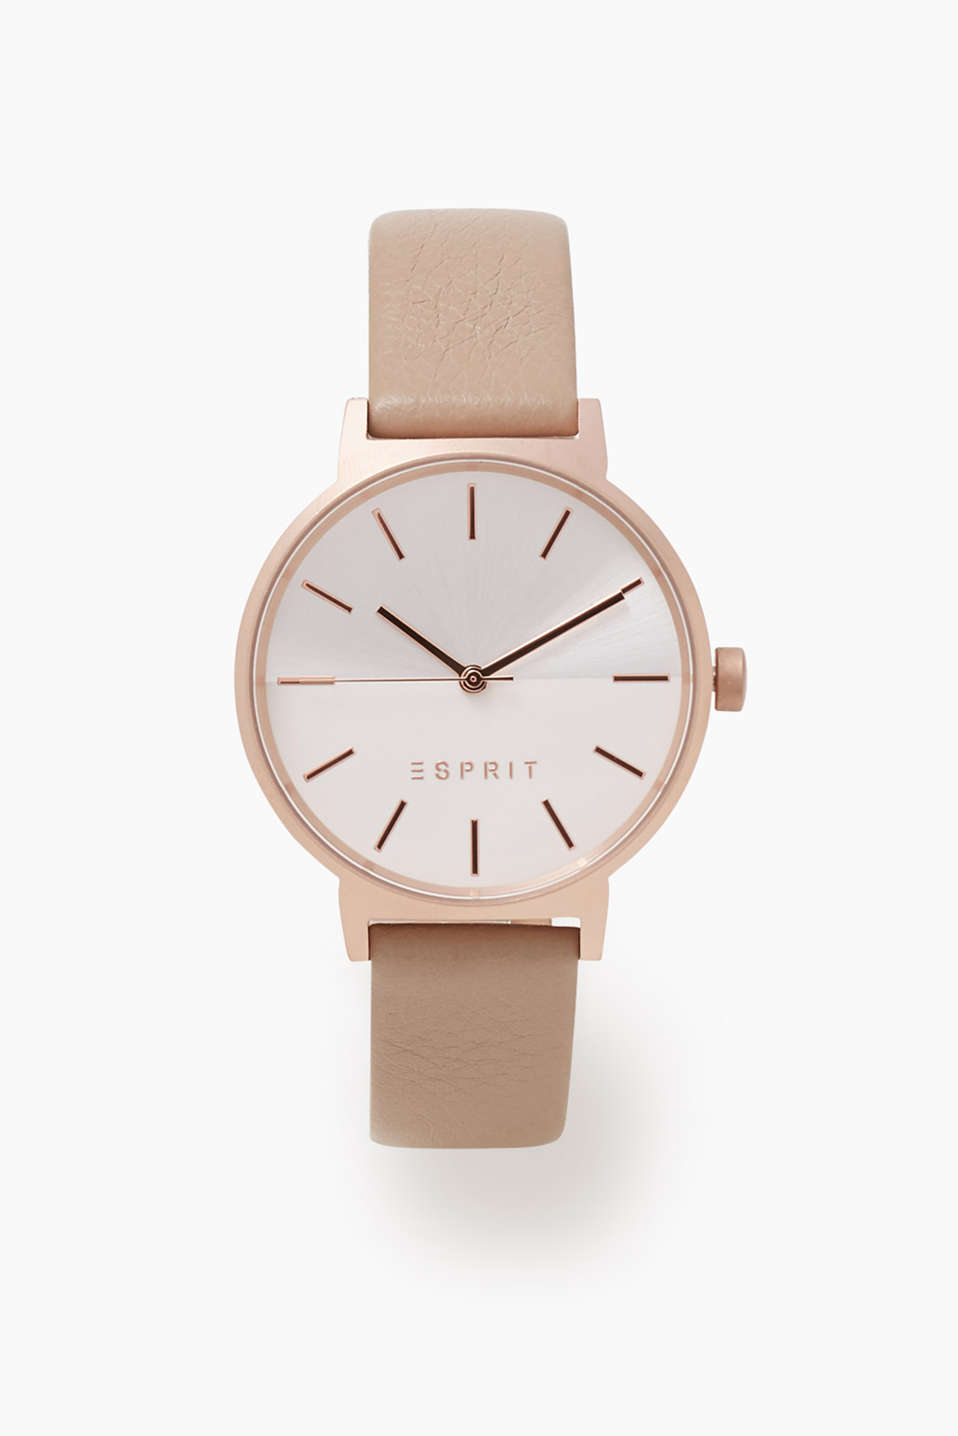 Esprit - Watch with a matte casing in rose gold